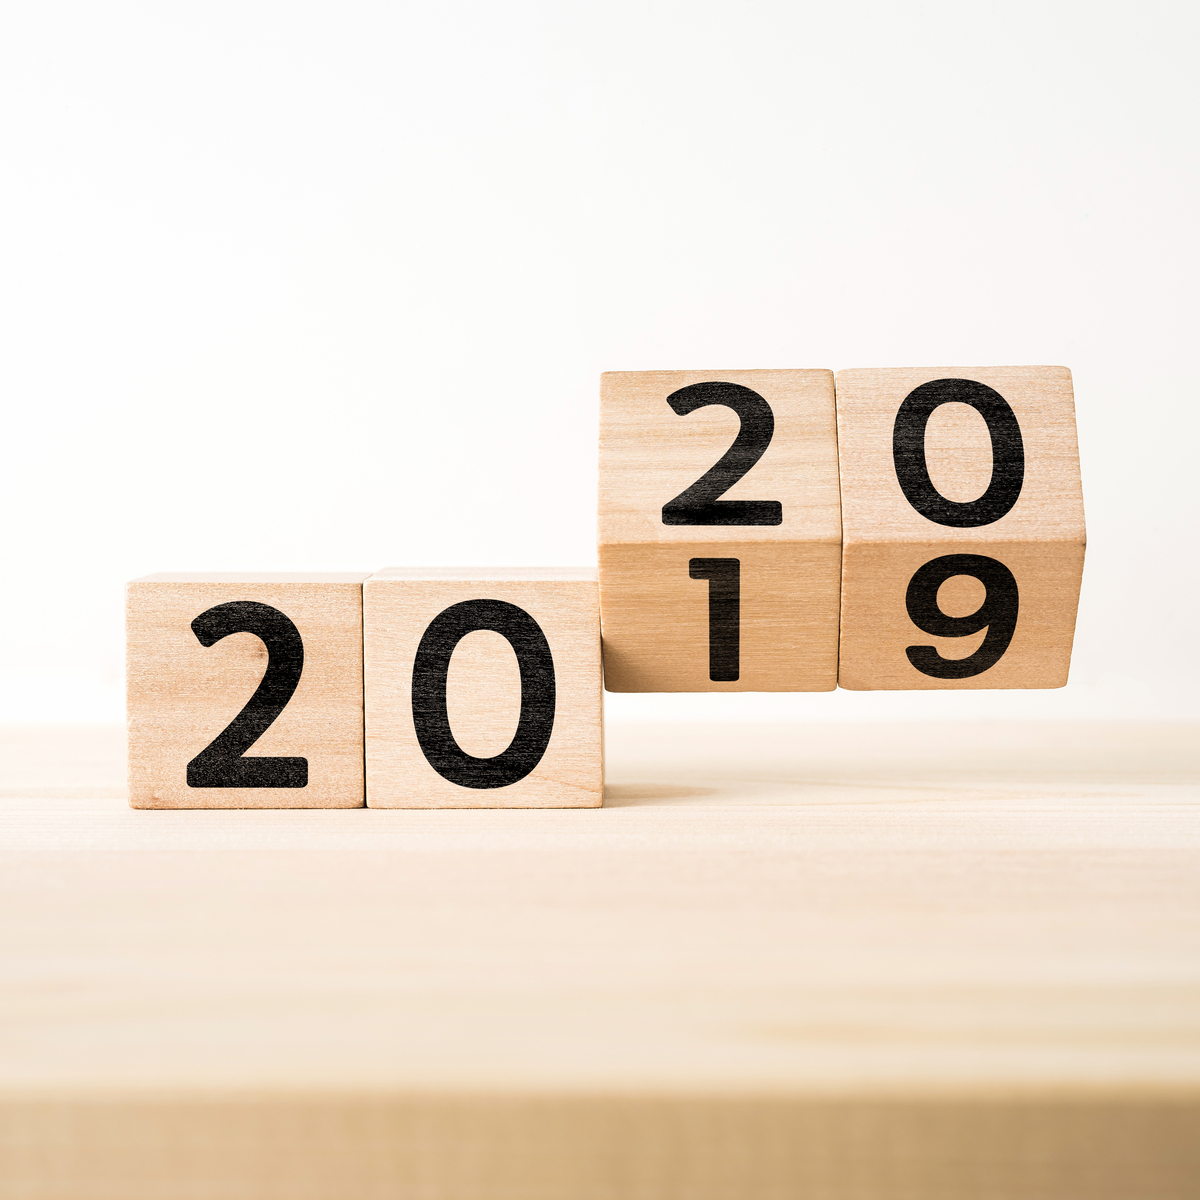 Wooden blocks that are labeled 2019 being changed to 2020.